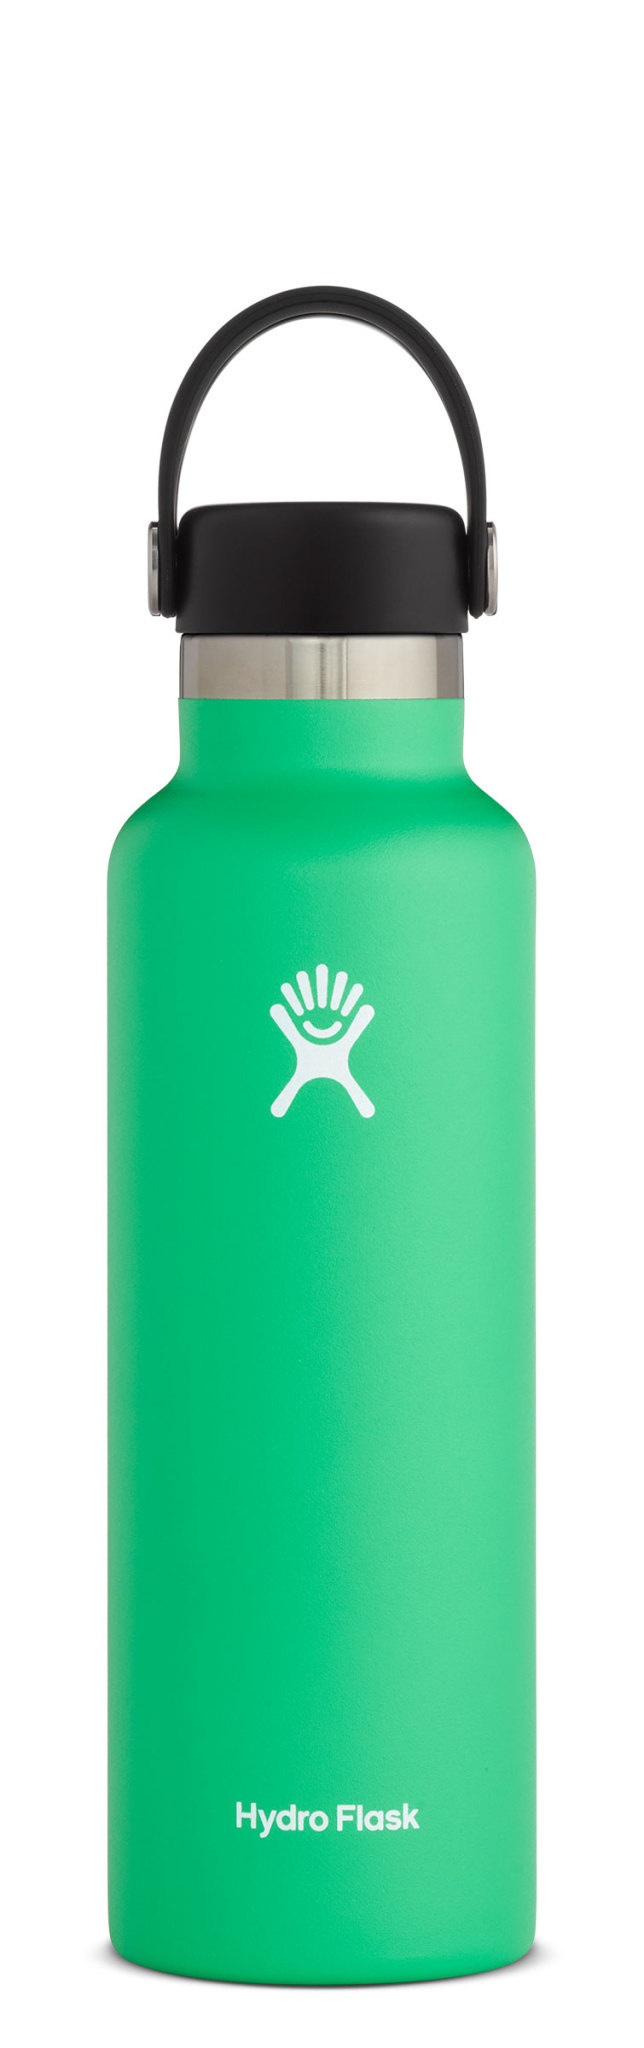 Hydro Flask 21oz Standard Mouth with Standard Flex Cap-8